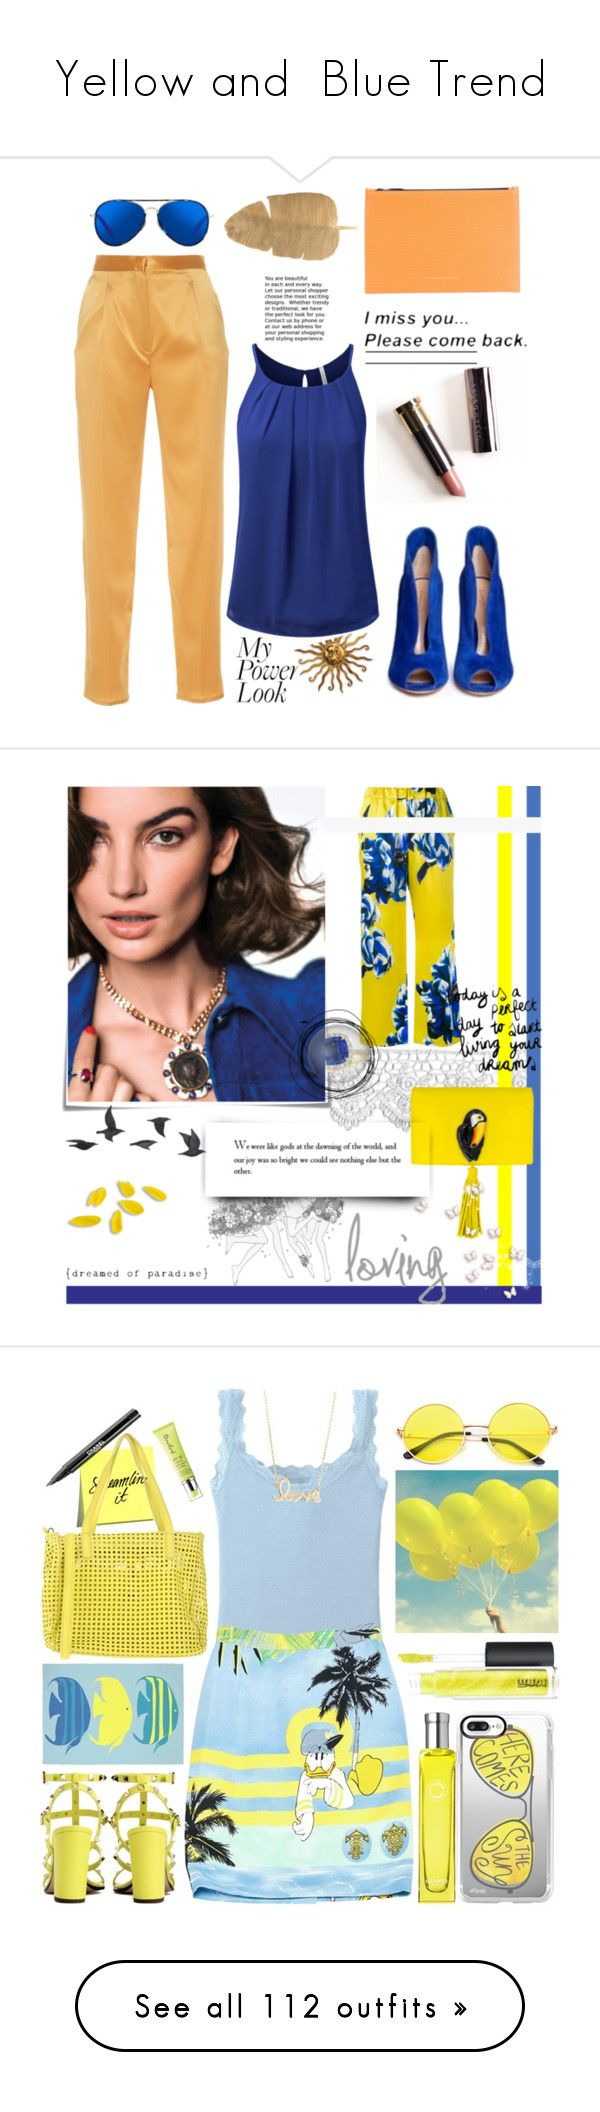 """""""Yellow and  Blue Trend"""" by yours-styling-best-friend ❤ liked on Polyvore featuring Sandra Mansour, Matthew Williamson, Victoria Beckham, Gianvito Rossi, Post-It, Jayson Home, Uniqlo, Iceberg, MAC Cosmetics and Casetify"""